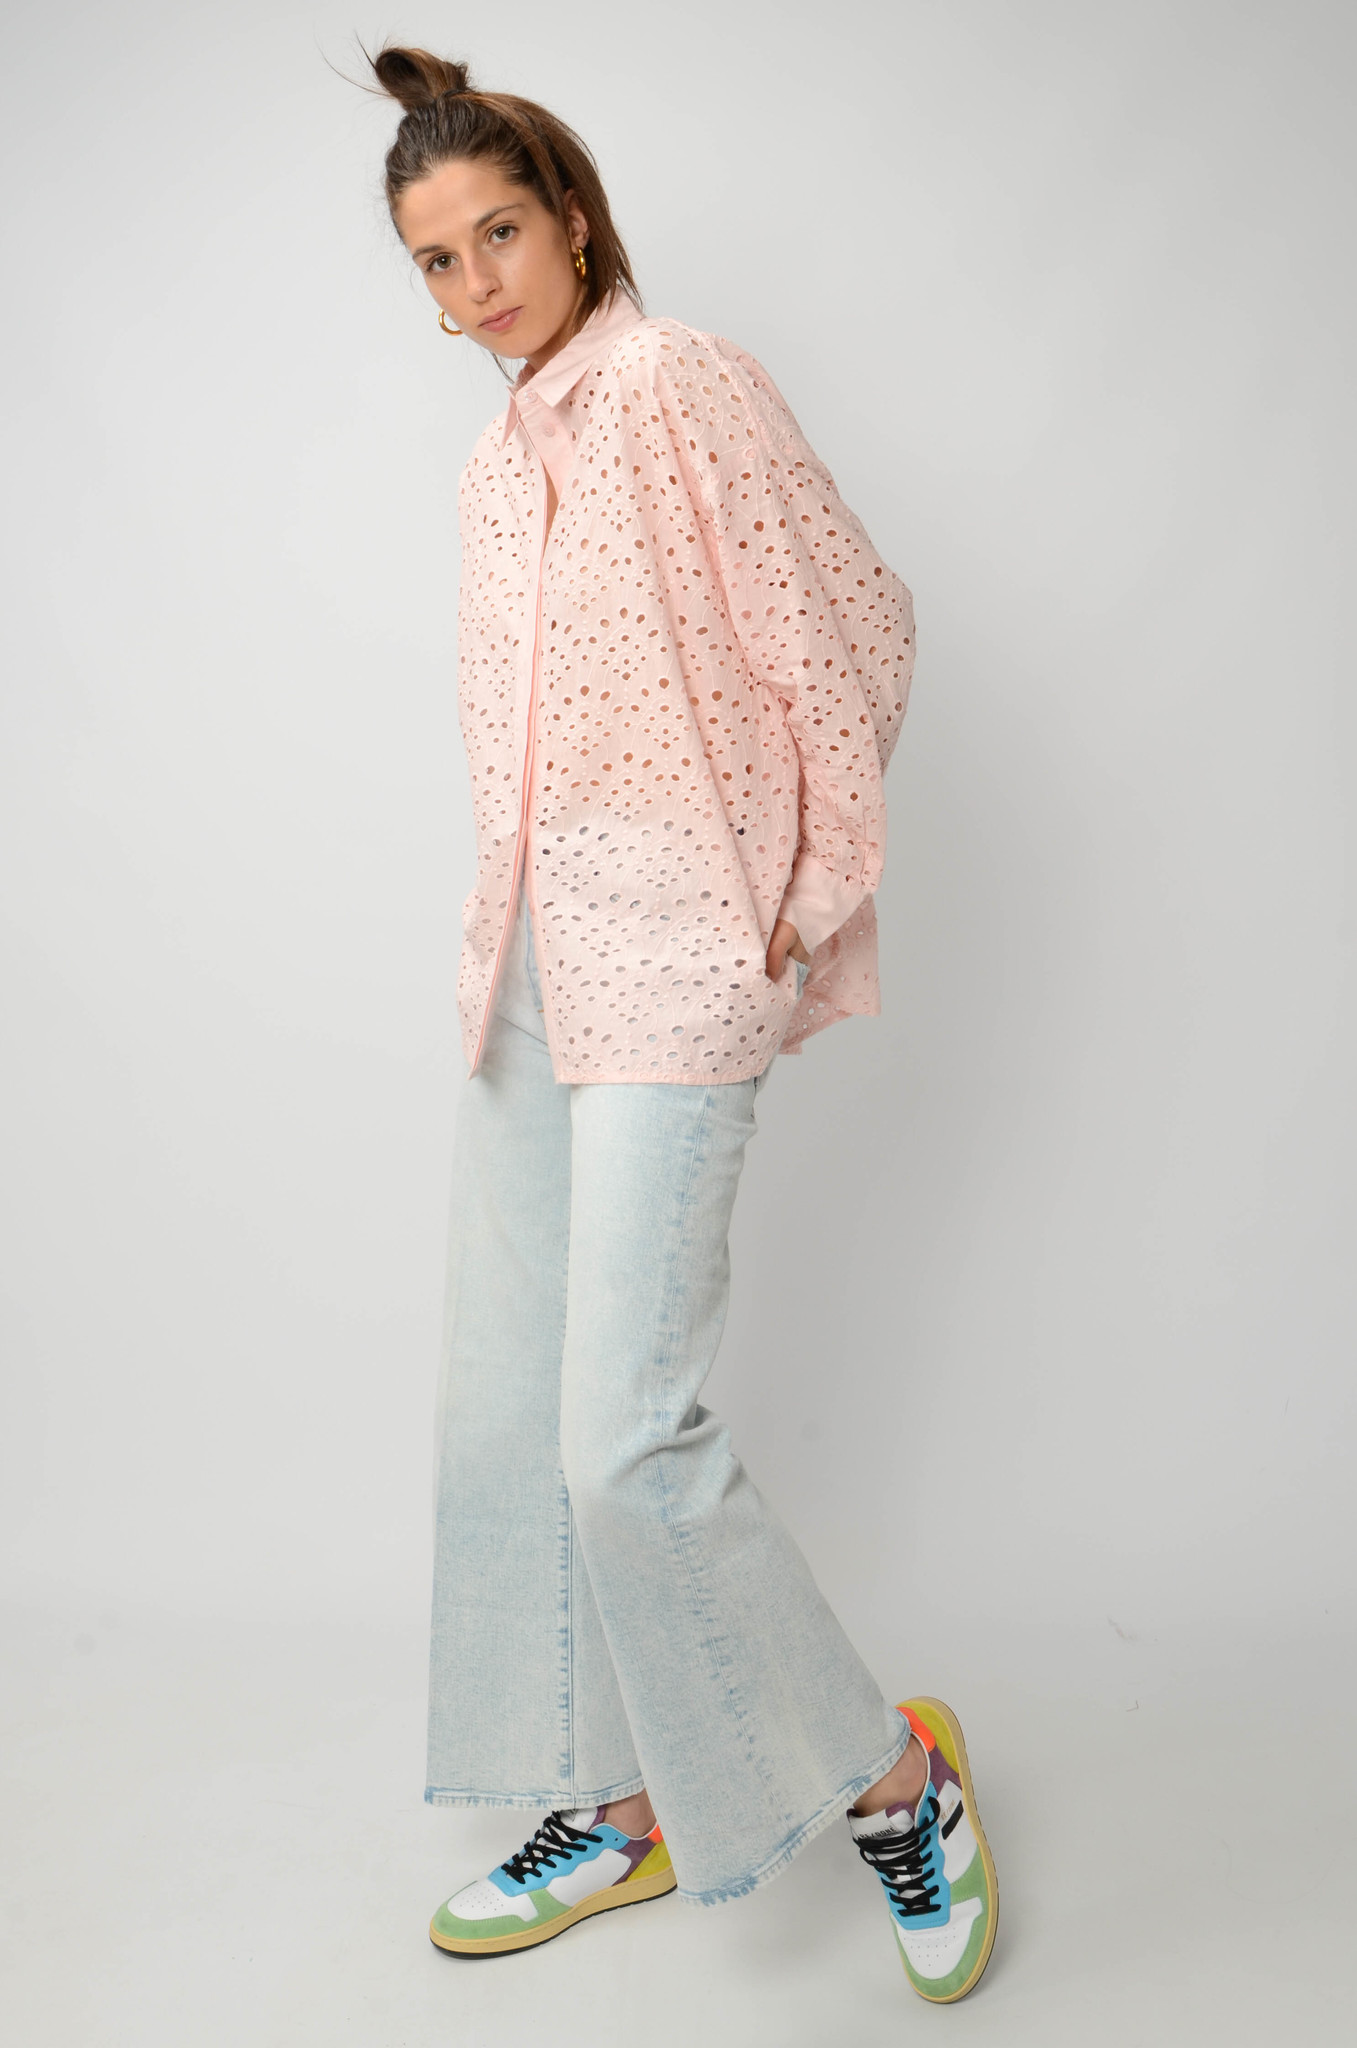 WOODY SHIRT IN PINK-2